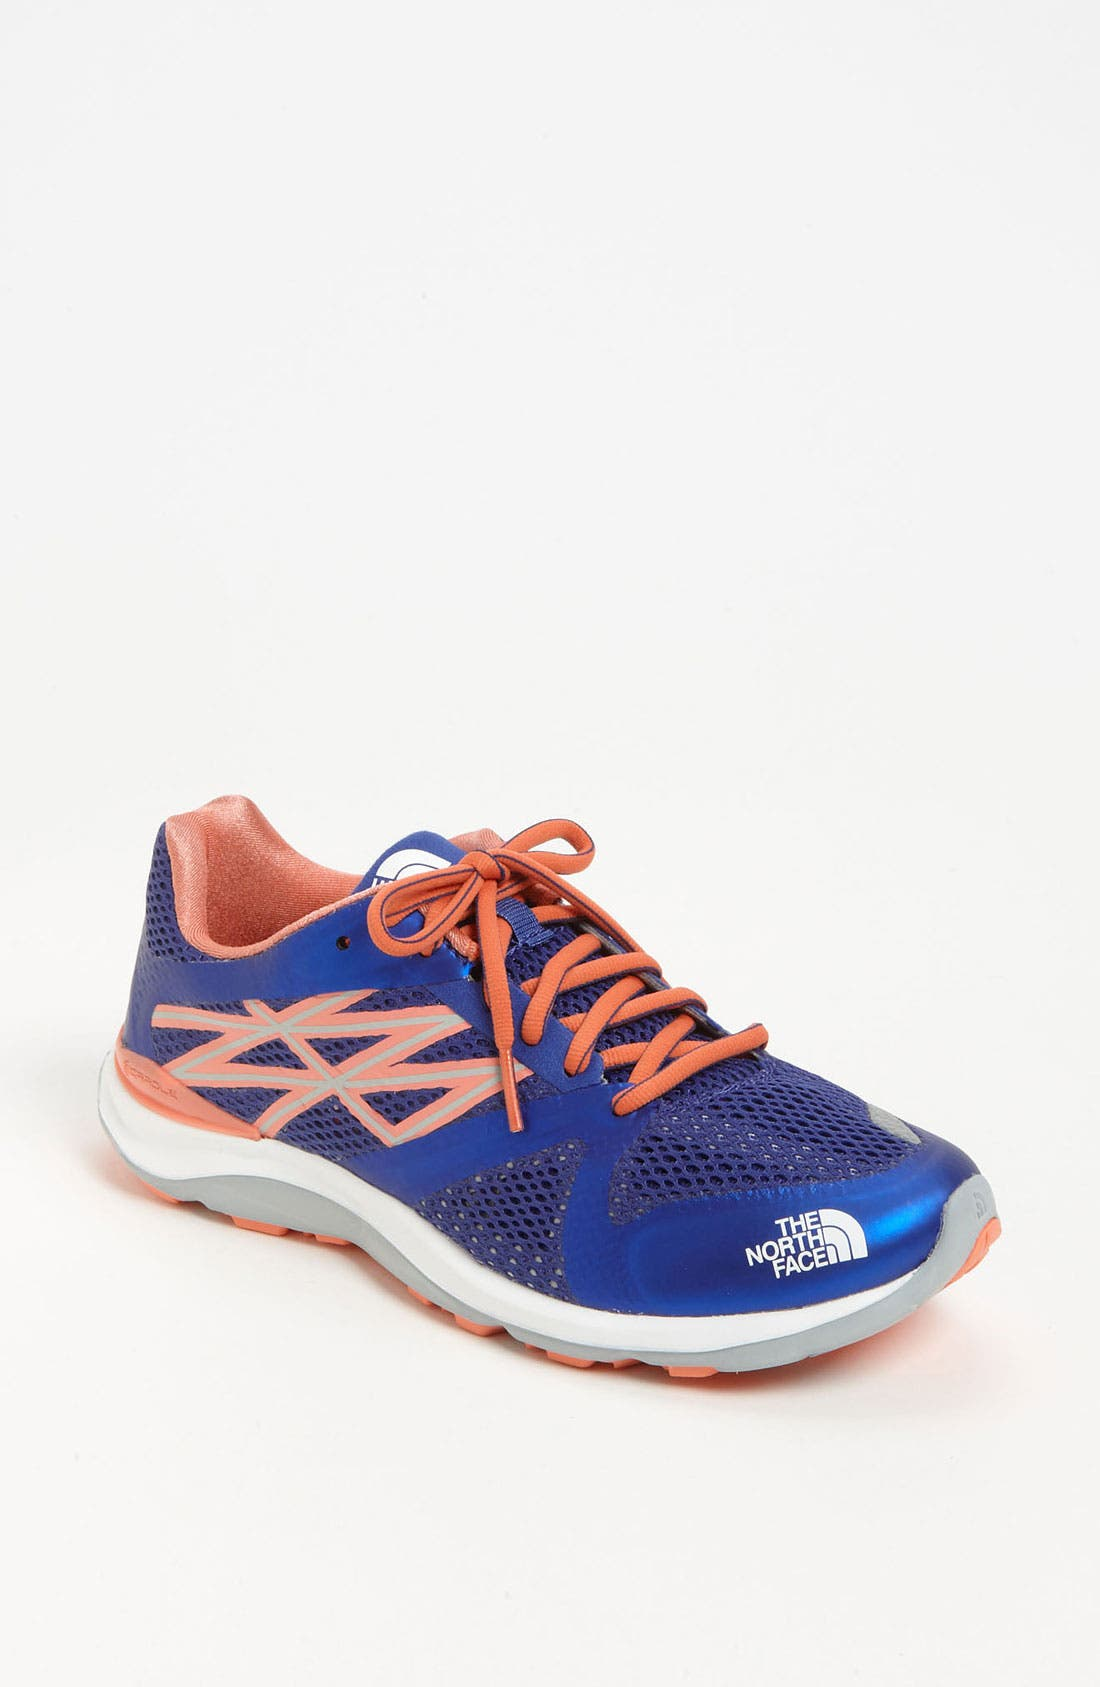 Alternate Image 1 Selected - The North Face 'Hyper-Track Guide' Training Shoe (Women)